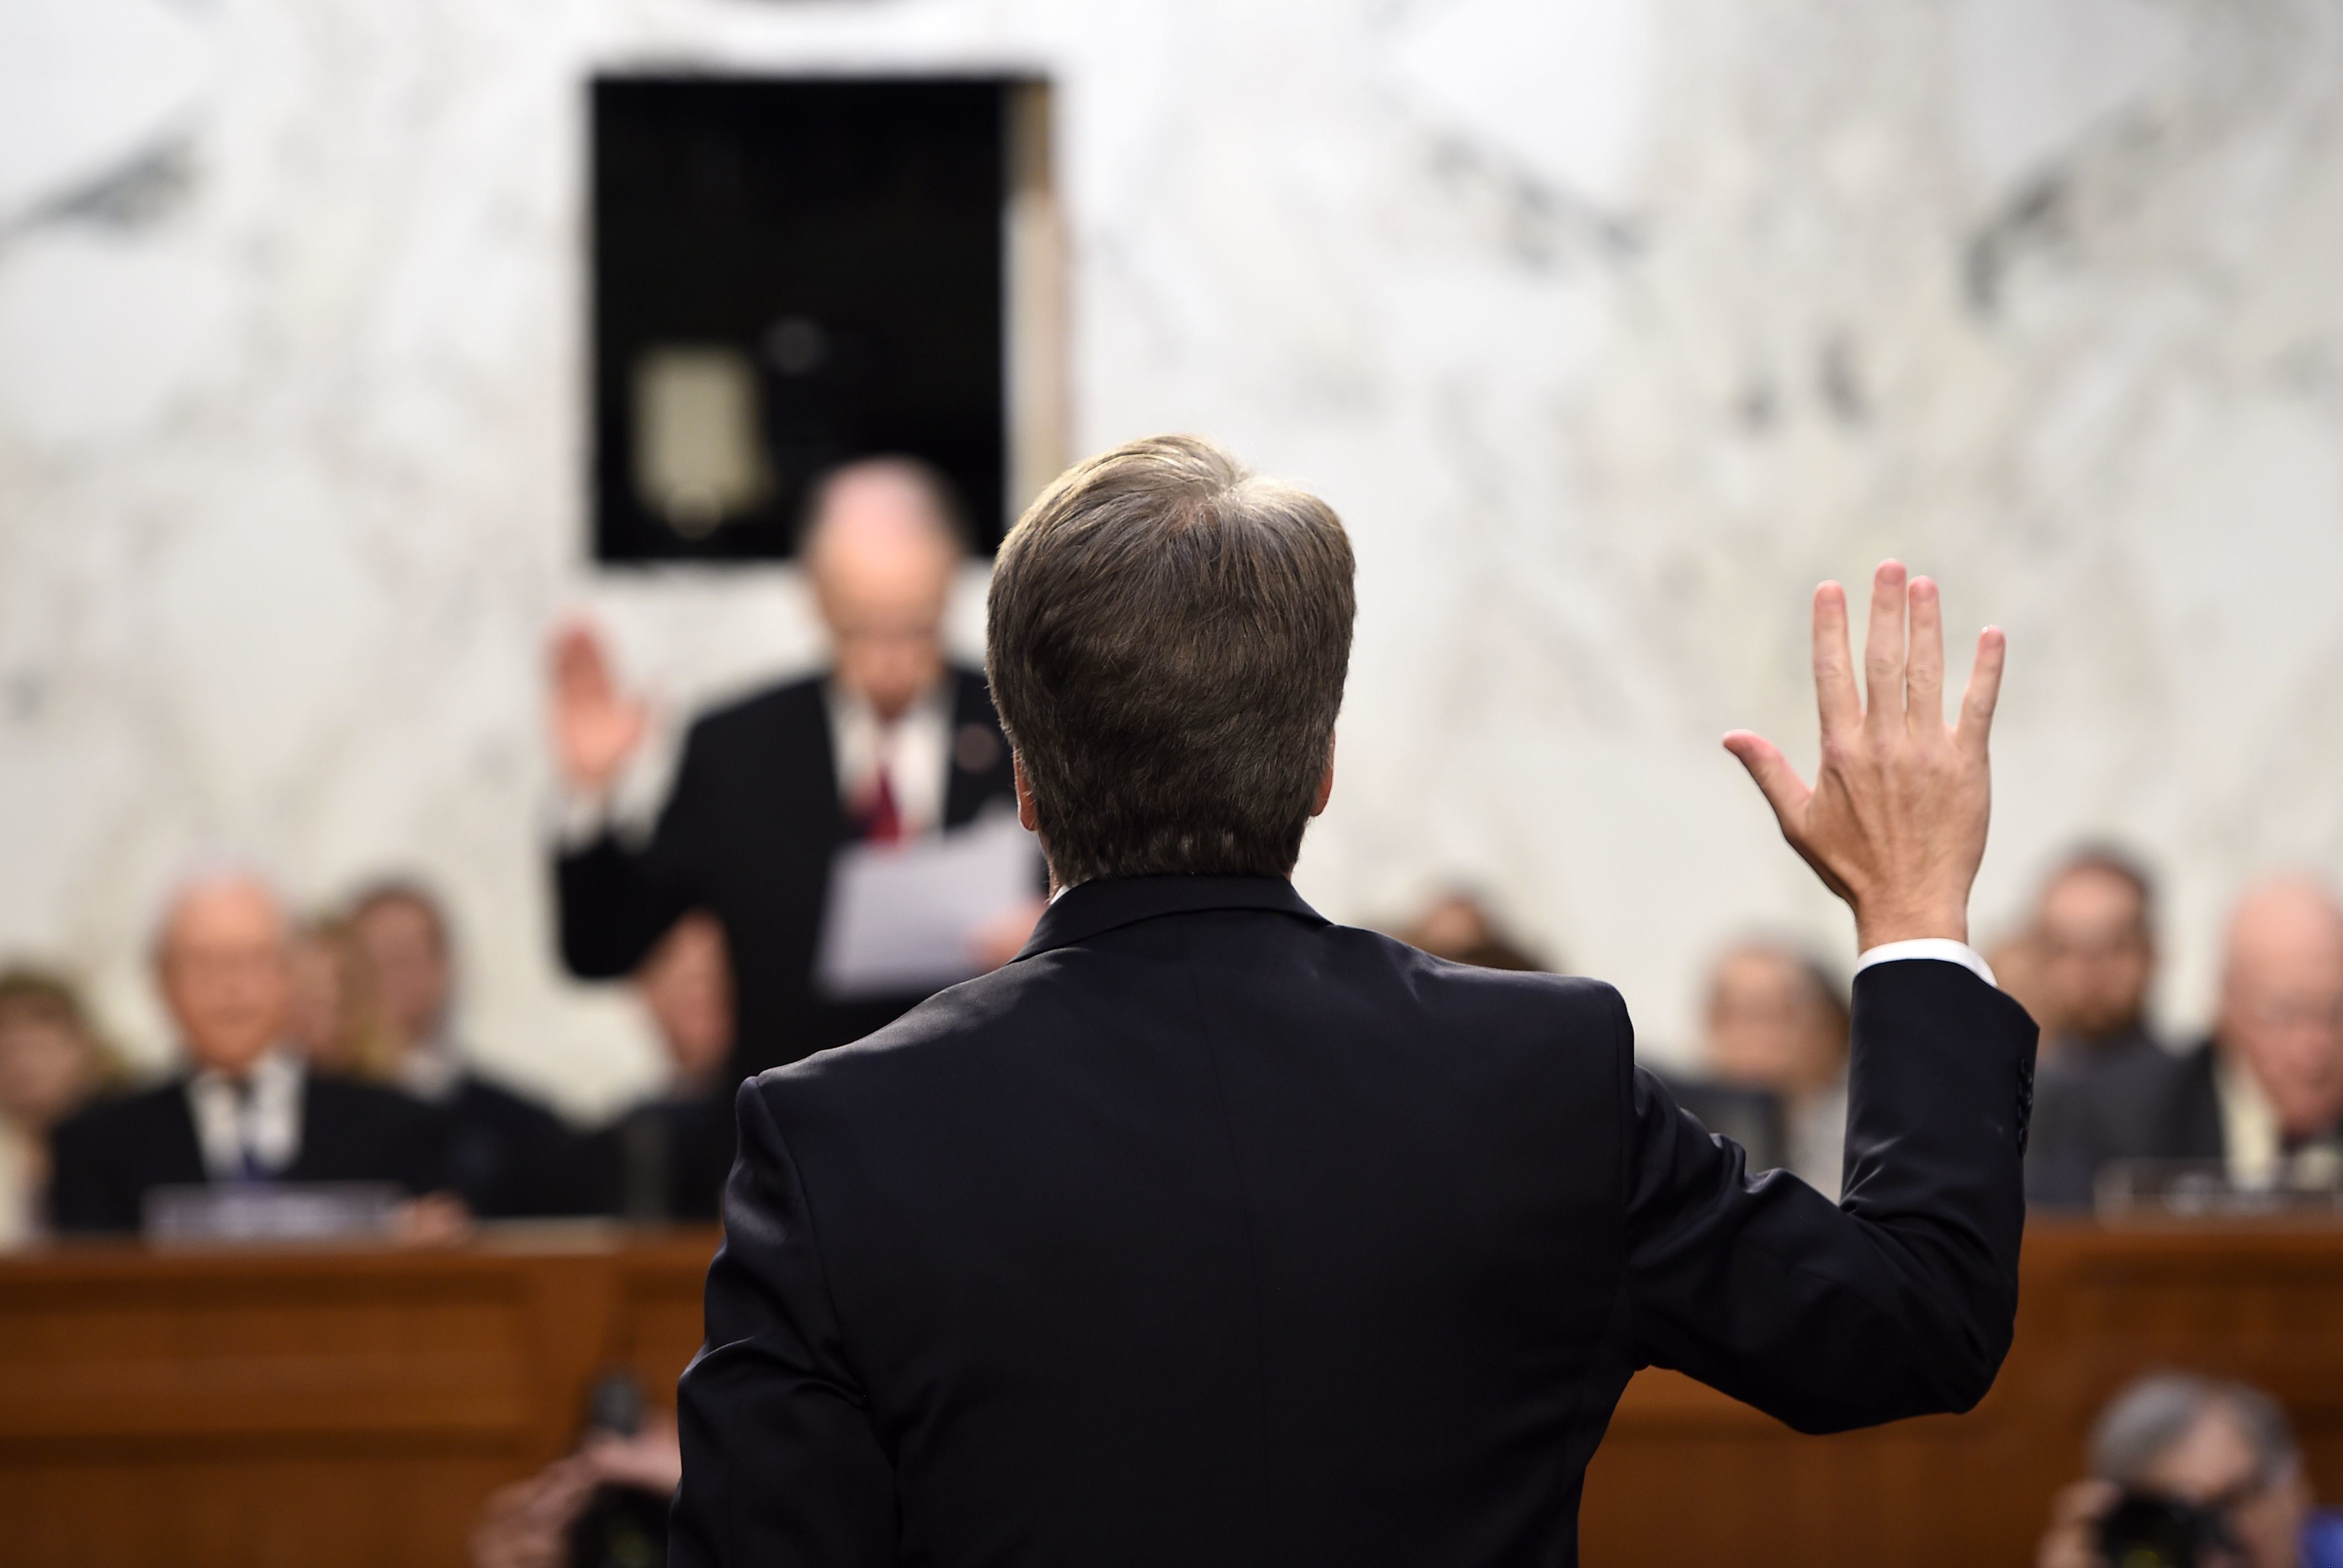 Kavanaugh is sworn in by the Chairman of the U.S. Senate Judiciary Committee Chuck Grassley, during his U.S. Senate Judiciary